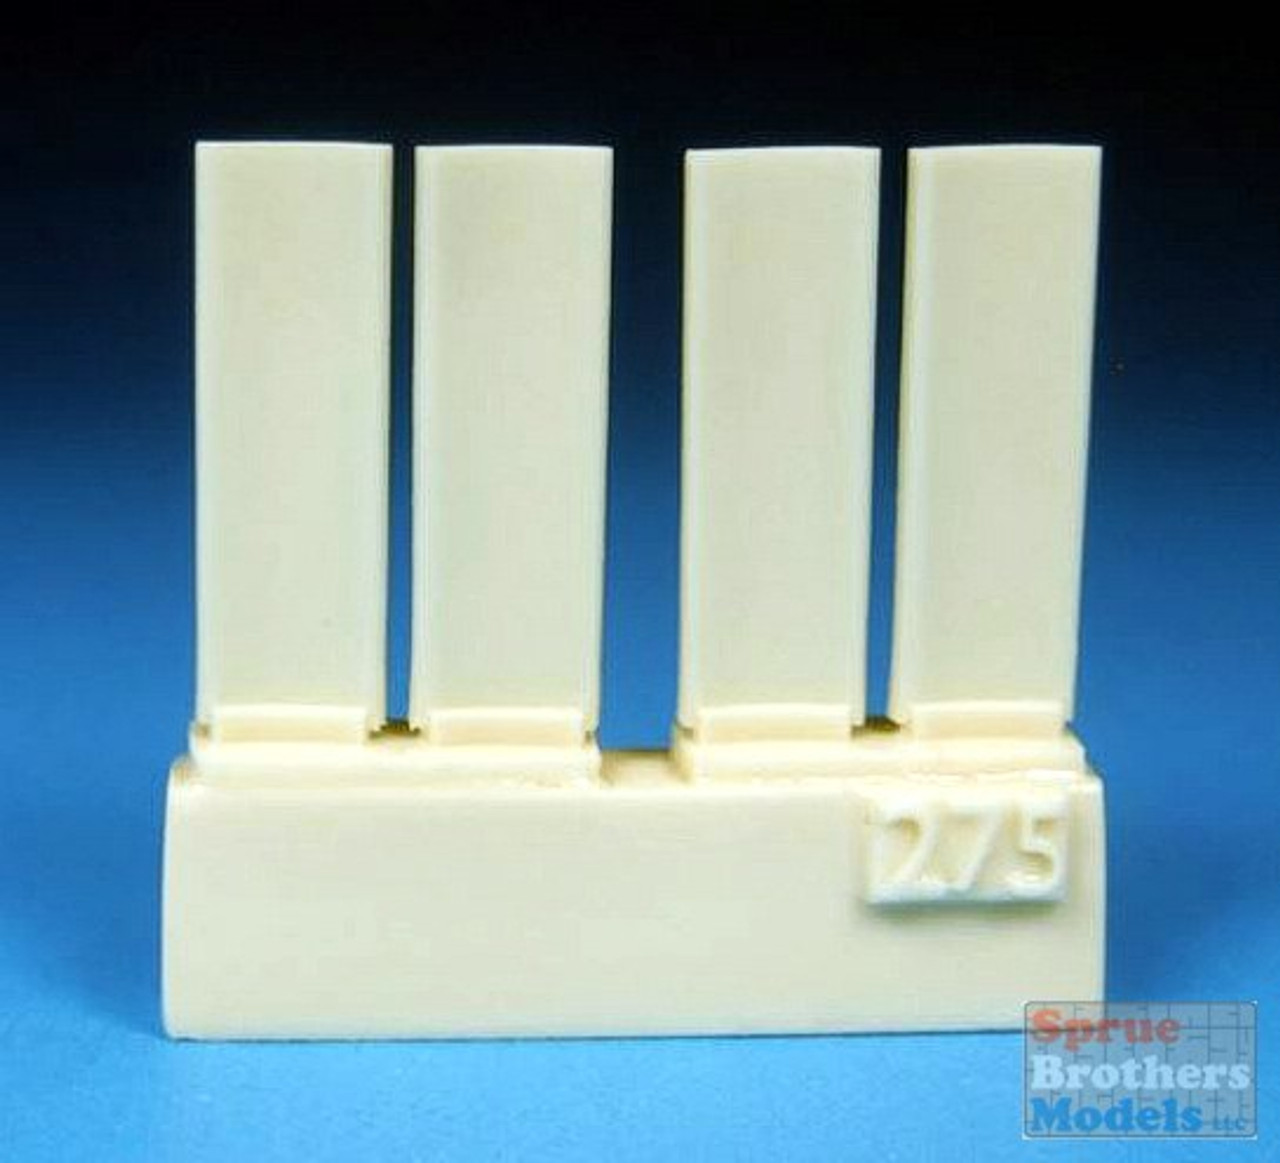 BARBR72275 1:72 BarracudaCast Avro Shackleton MR.2 Early Exhausts (AFX kit)